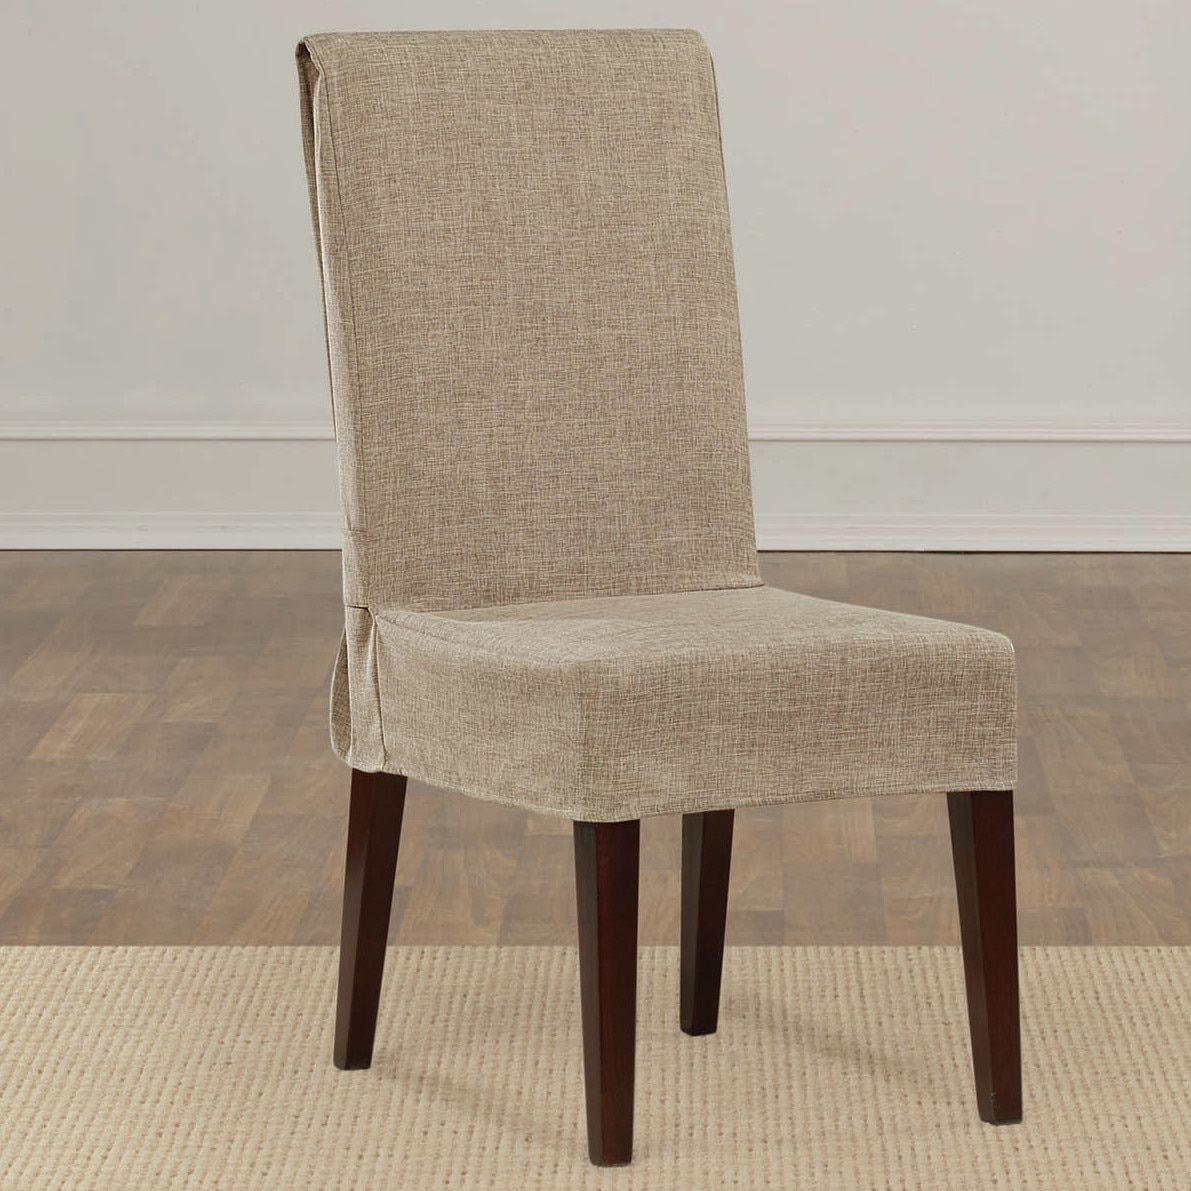 Sure Fit Soft Suede Shorty Dining Room Chair Slipcover Prepossessing Sure Fit Textured Linen Shorty Dining Room Chair Slipcover Sand Inspiration Design